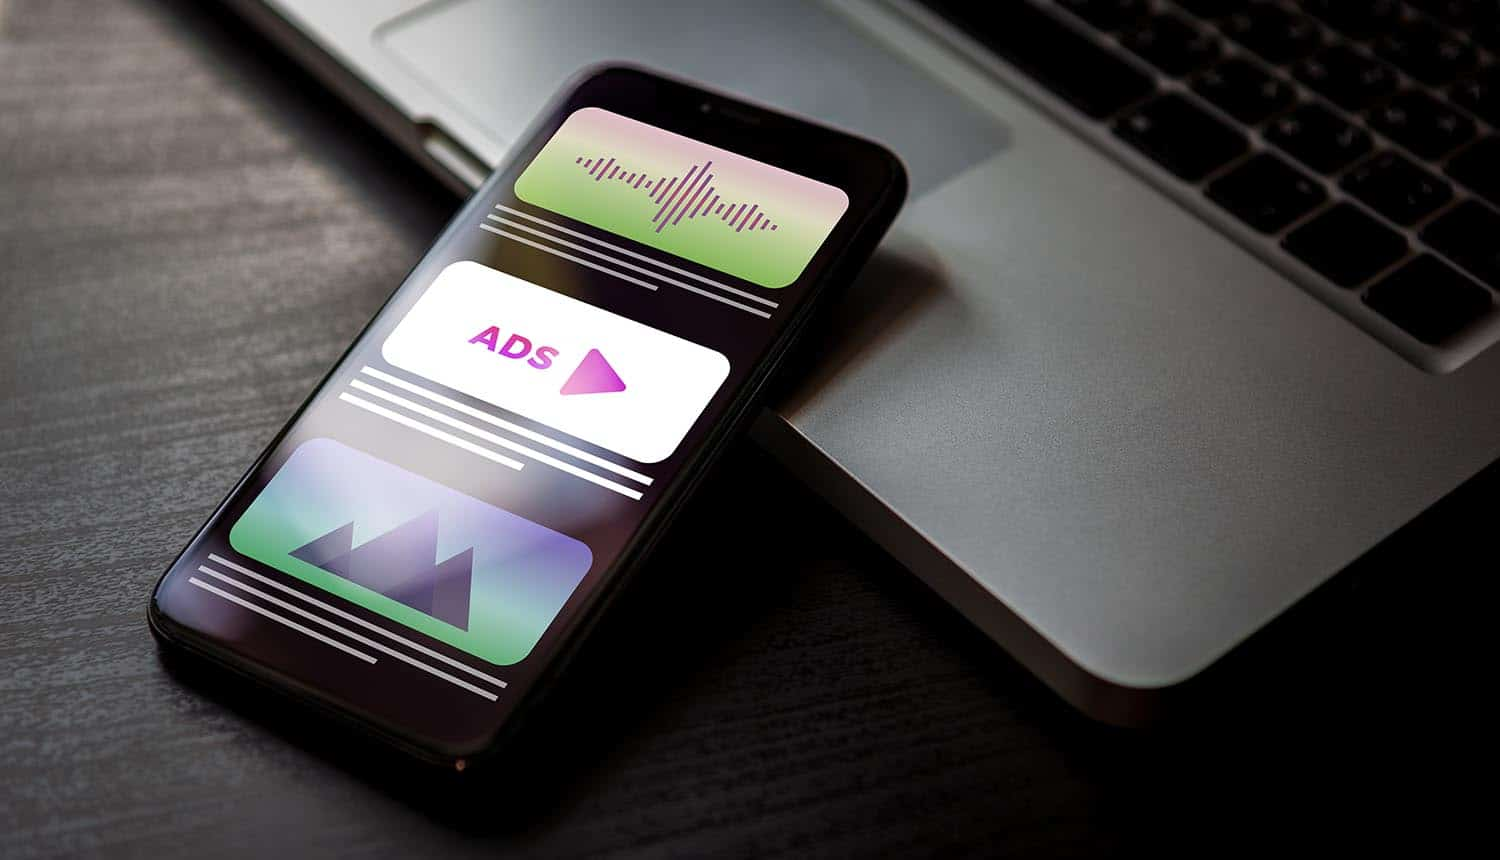 Advertising media banner block when viewing a site on a phone screen showing mobile advertising and app tracking